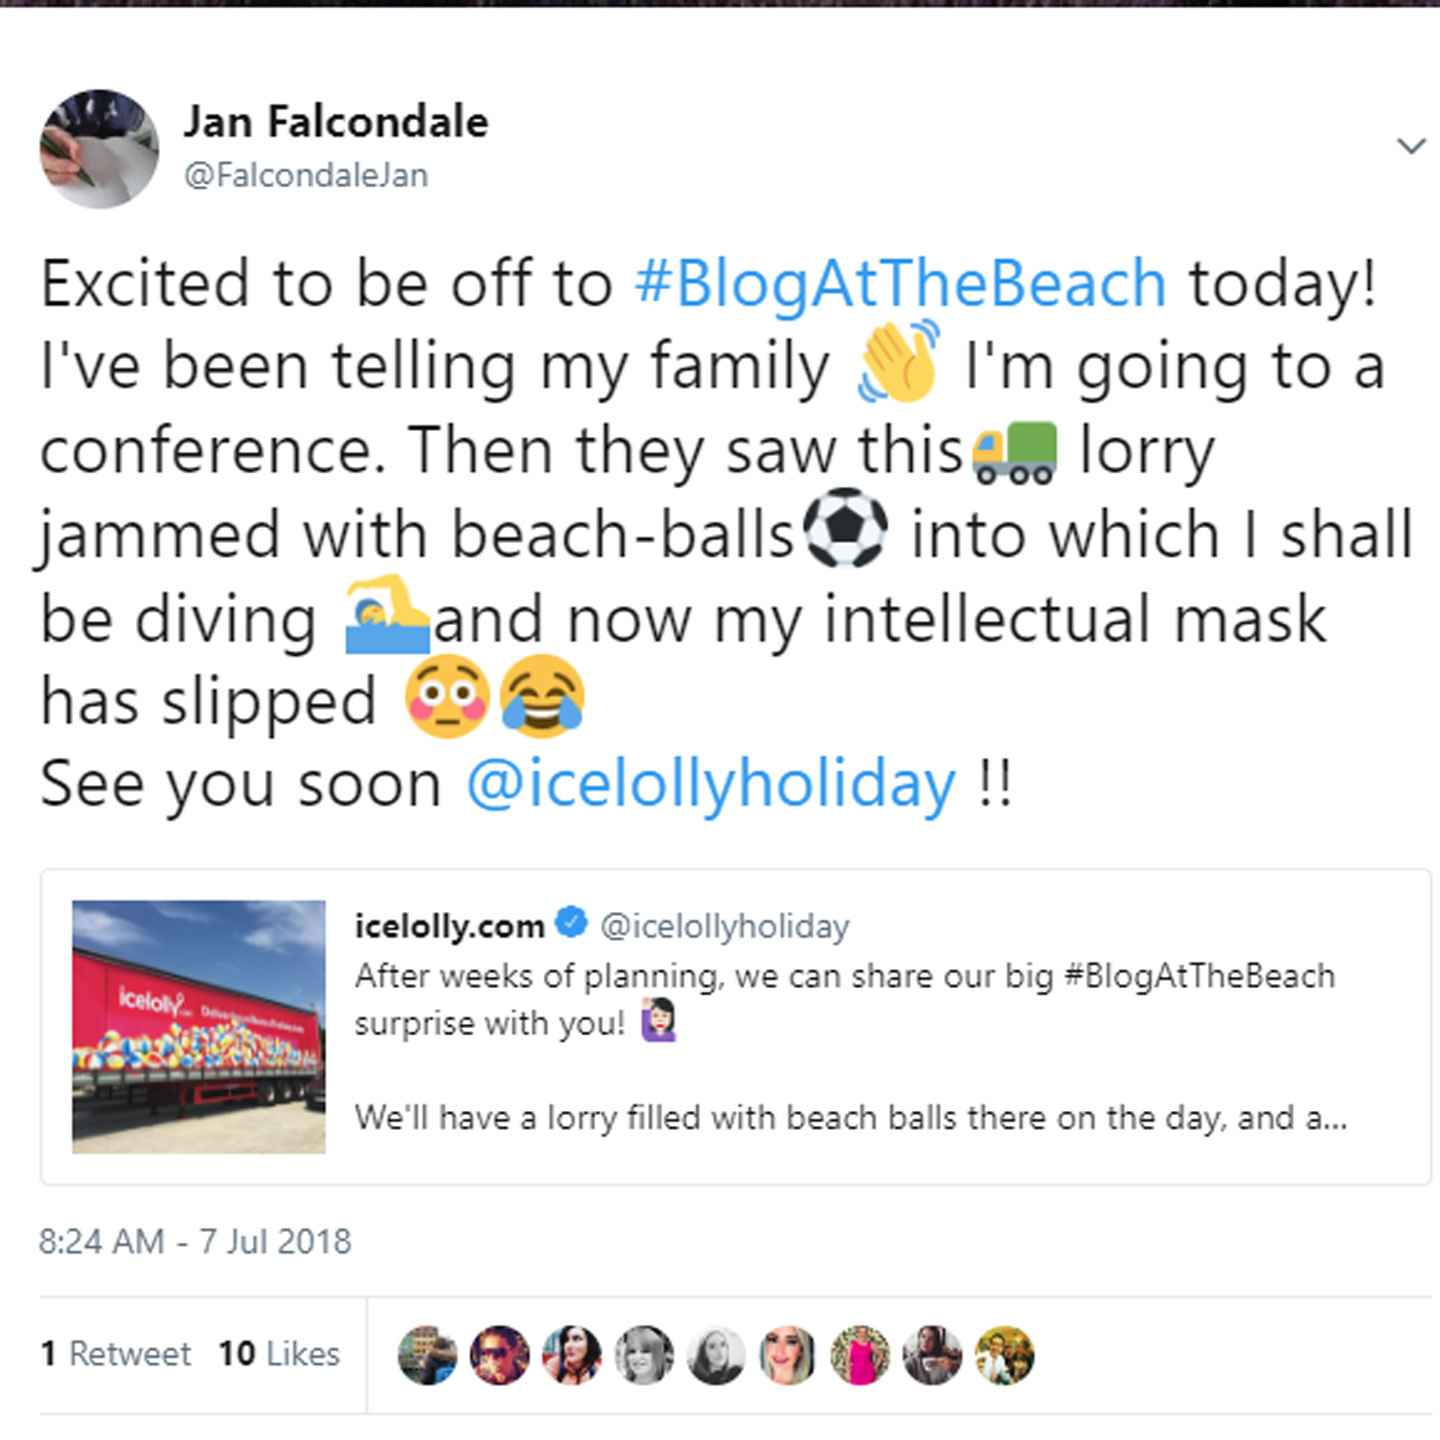 Finding out about holiday deals with Icelolly holidays at Blog at the Beach travel influencer's festival. Talks, offers, travel info plus games and food. 27 things I learned about Icelolly holidays on Falcondale Life blog. Image description: A image of a tweet about going to Blog at the Beach by Falcondalejan.